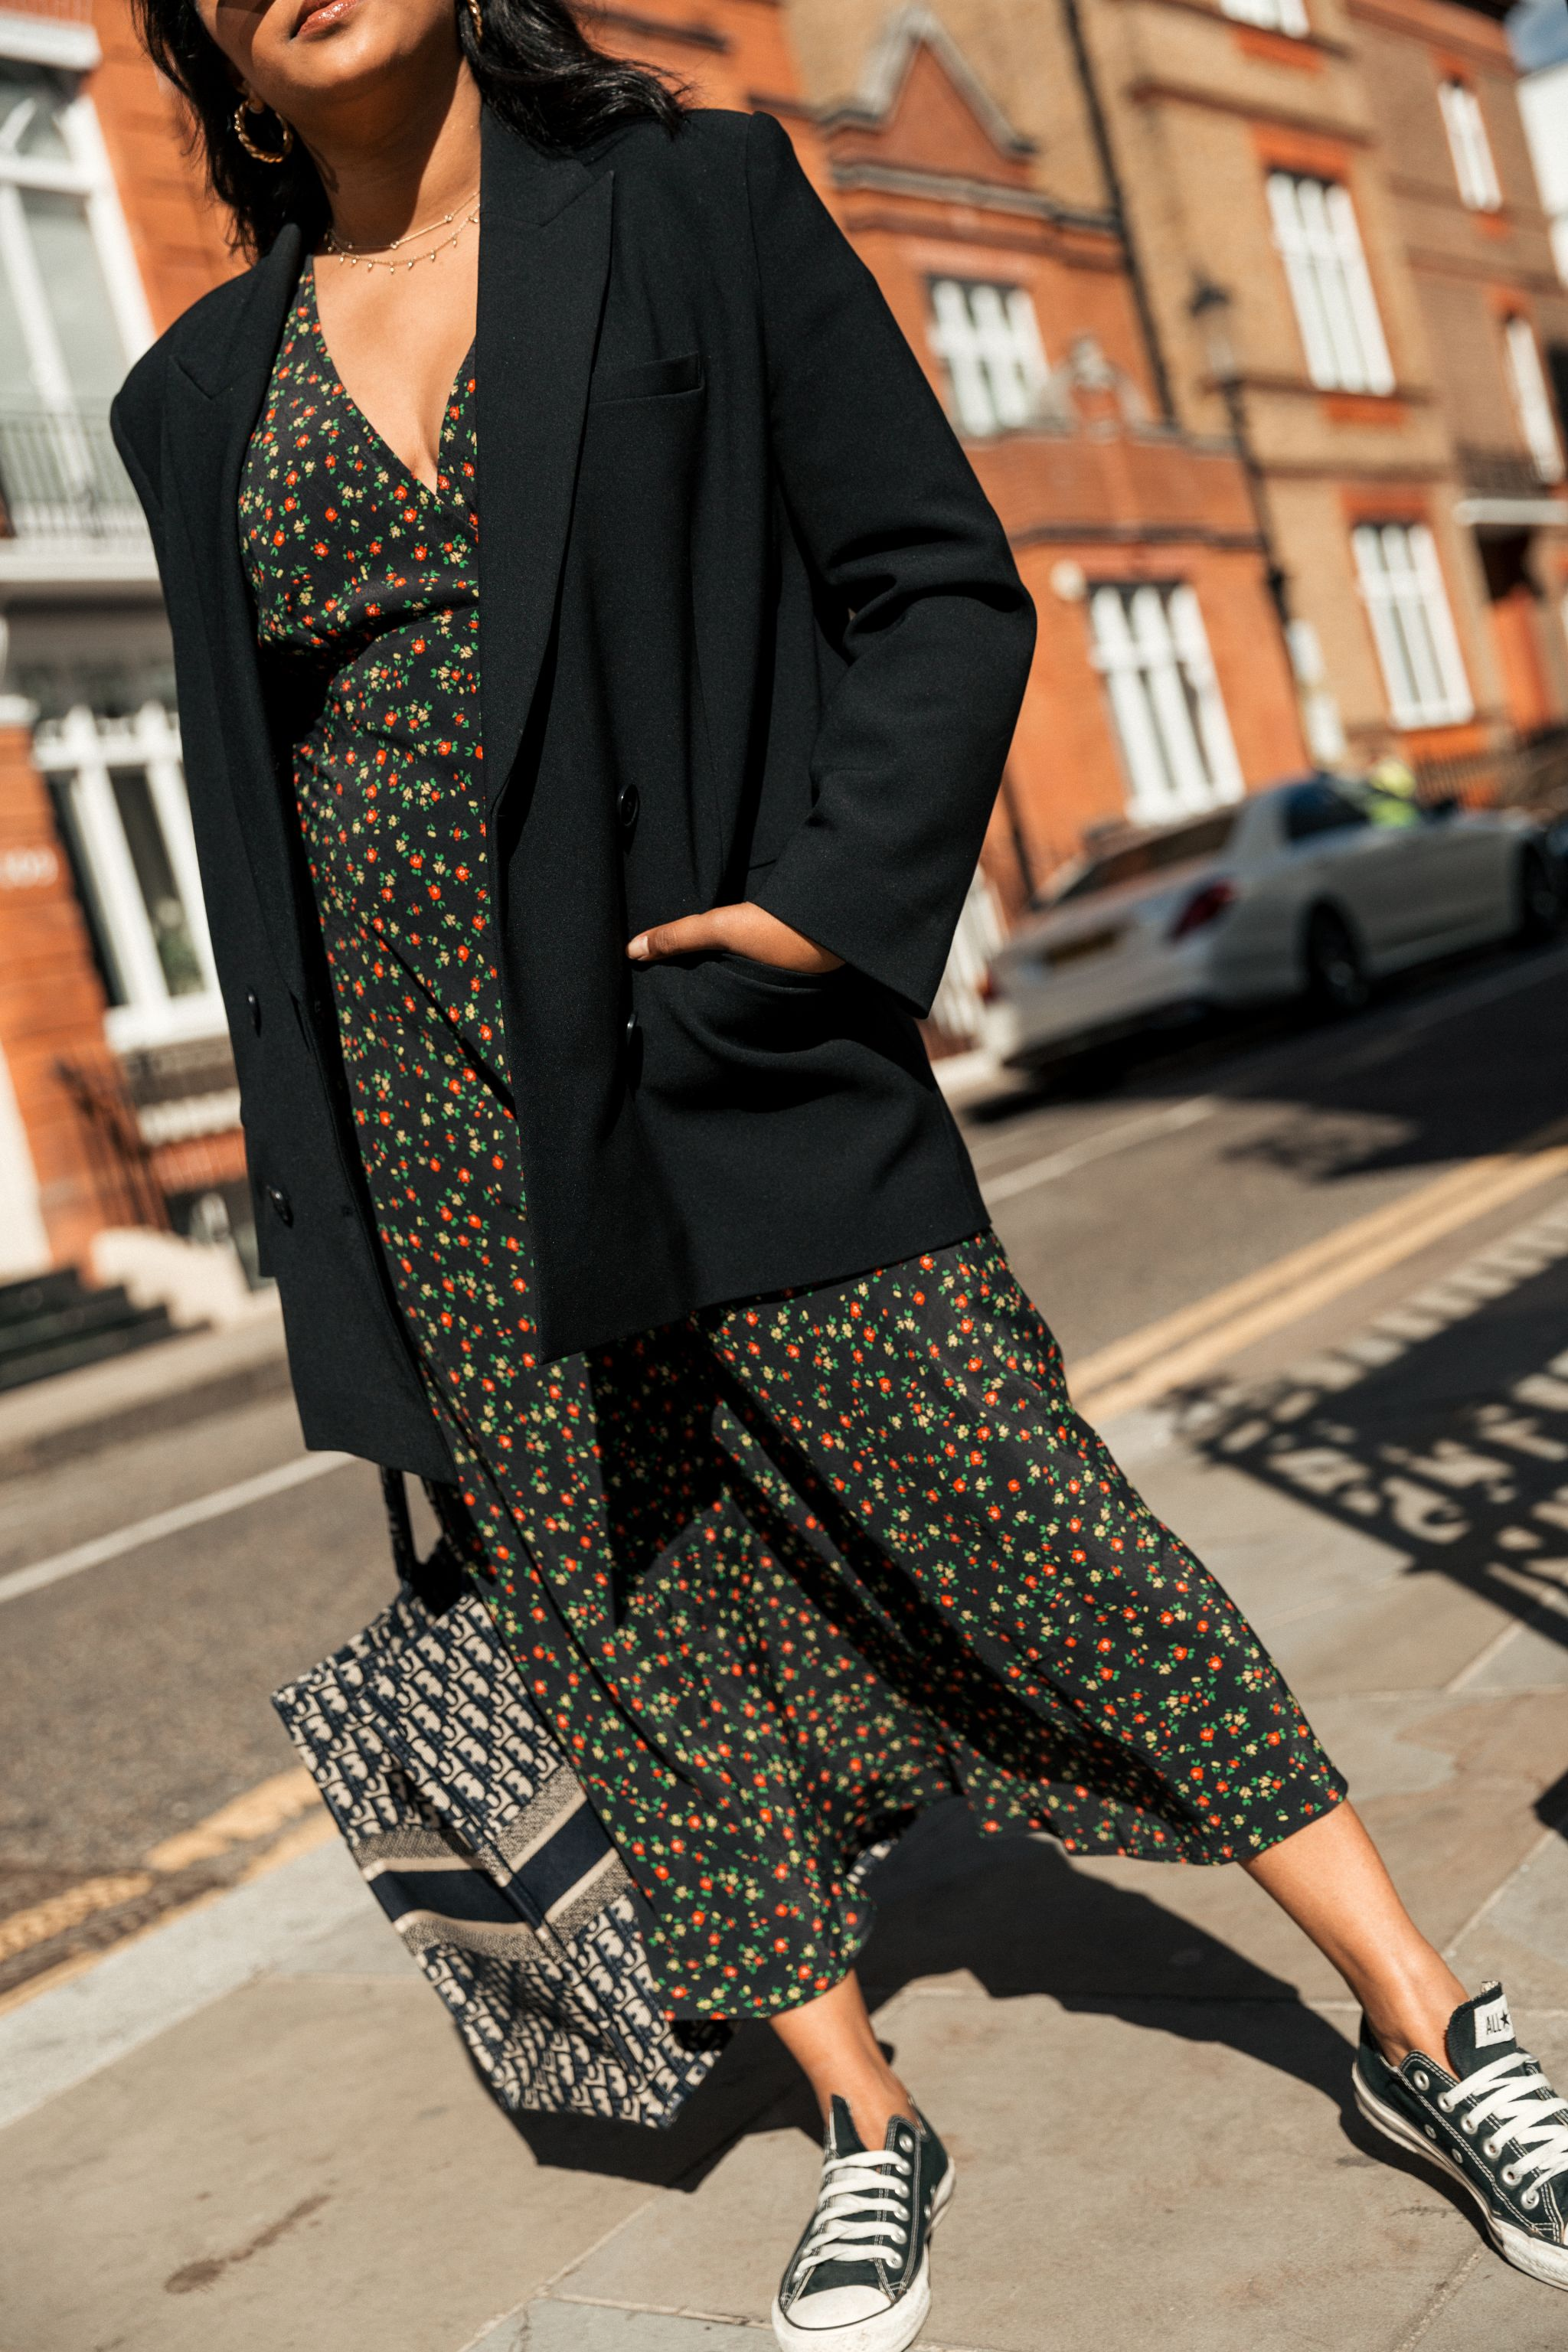 2 Ways To Style Up Your Dresses During The Colder Months